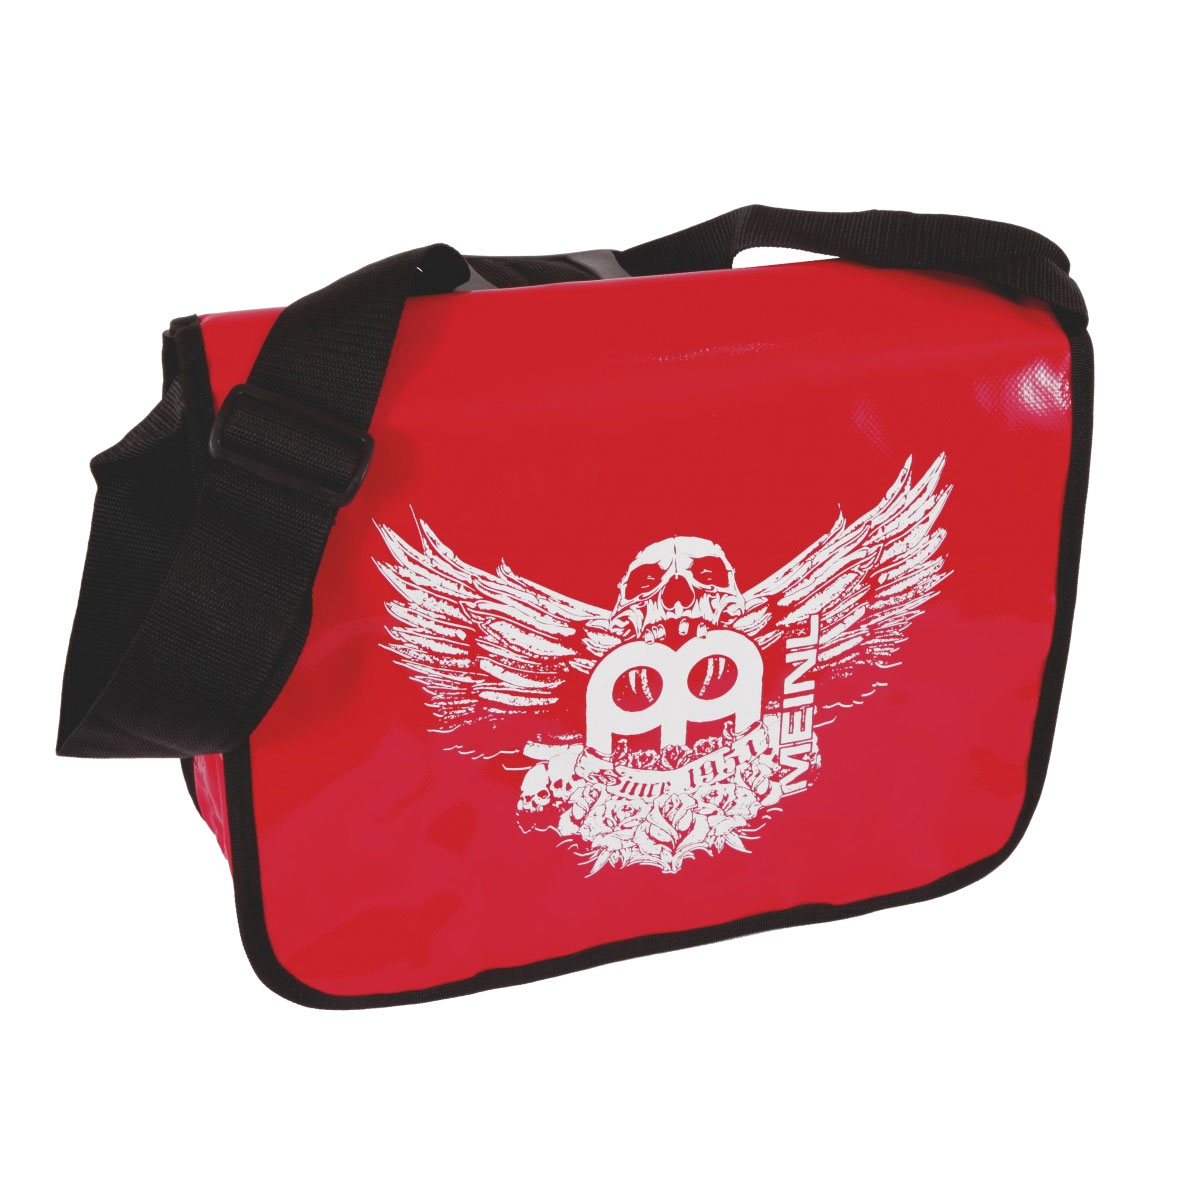 Meinl Red Jawbreaker Sling Bag